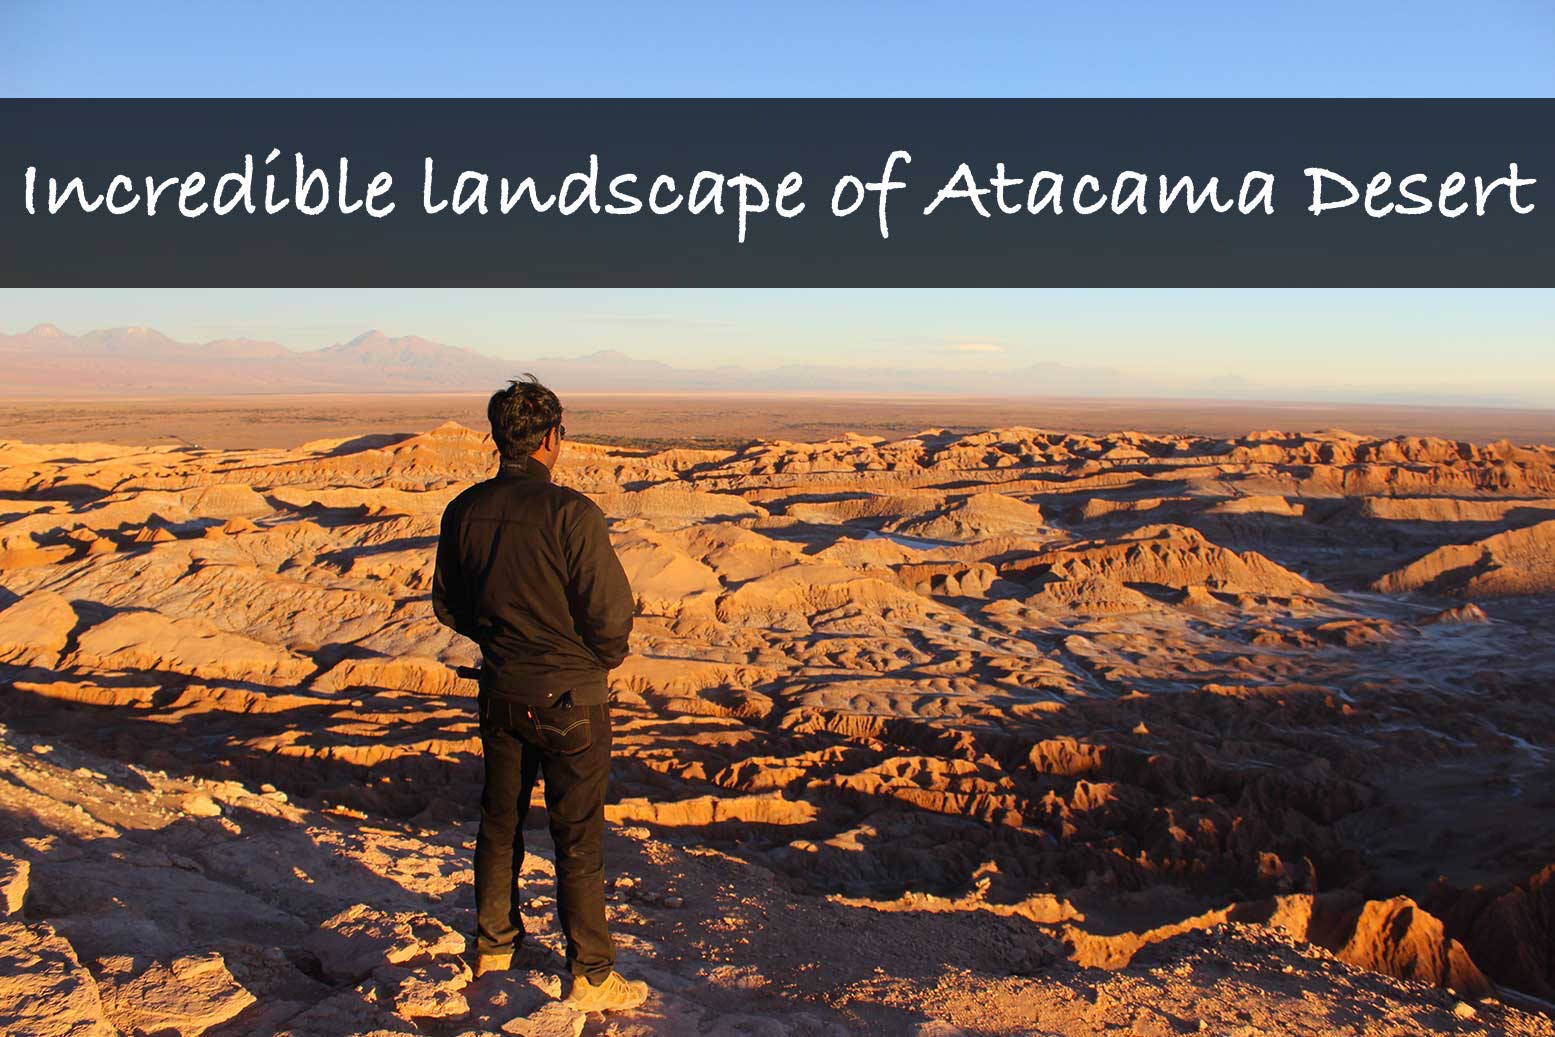 Exploring incredible landscape of Atacama Desert